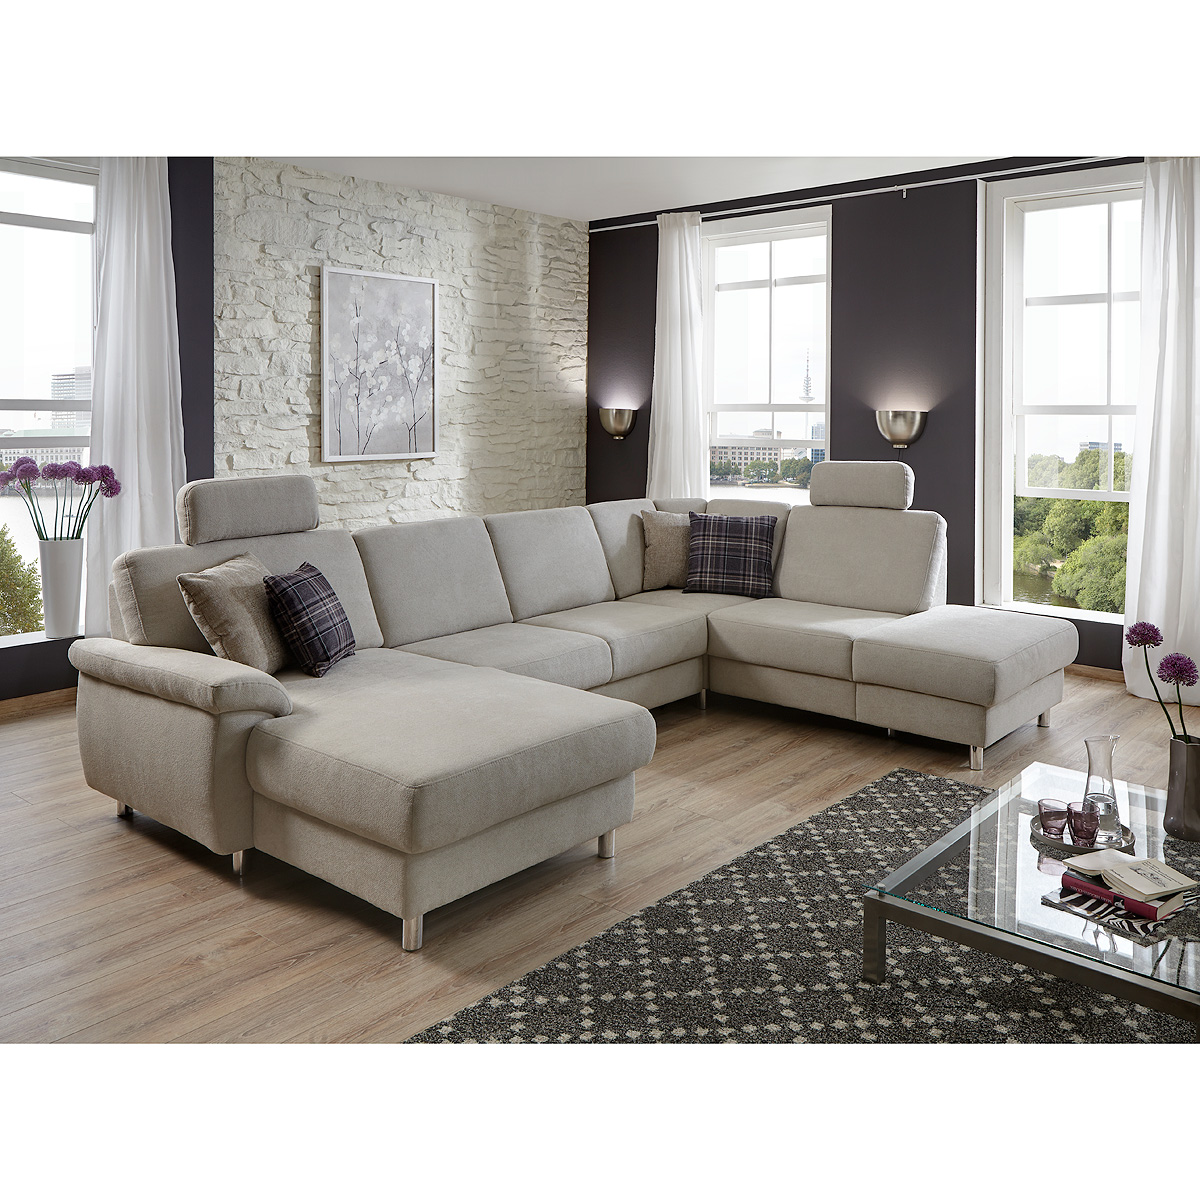 Wohnlandschaft winston ecksofa sofa polsterm bel u form in for Couch u form klein